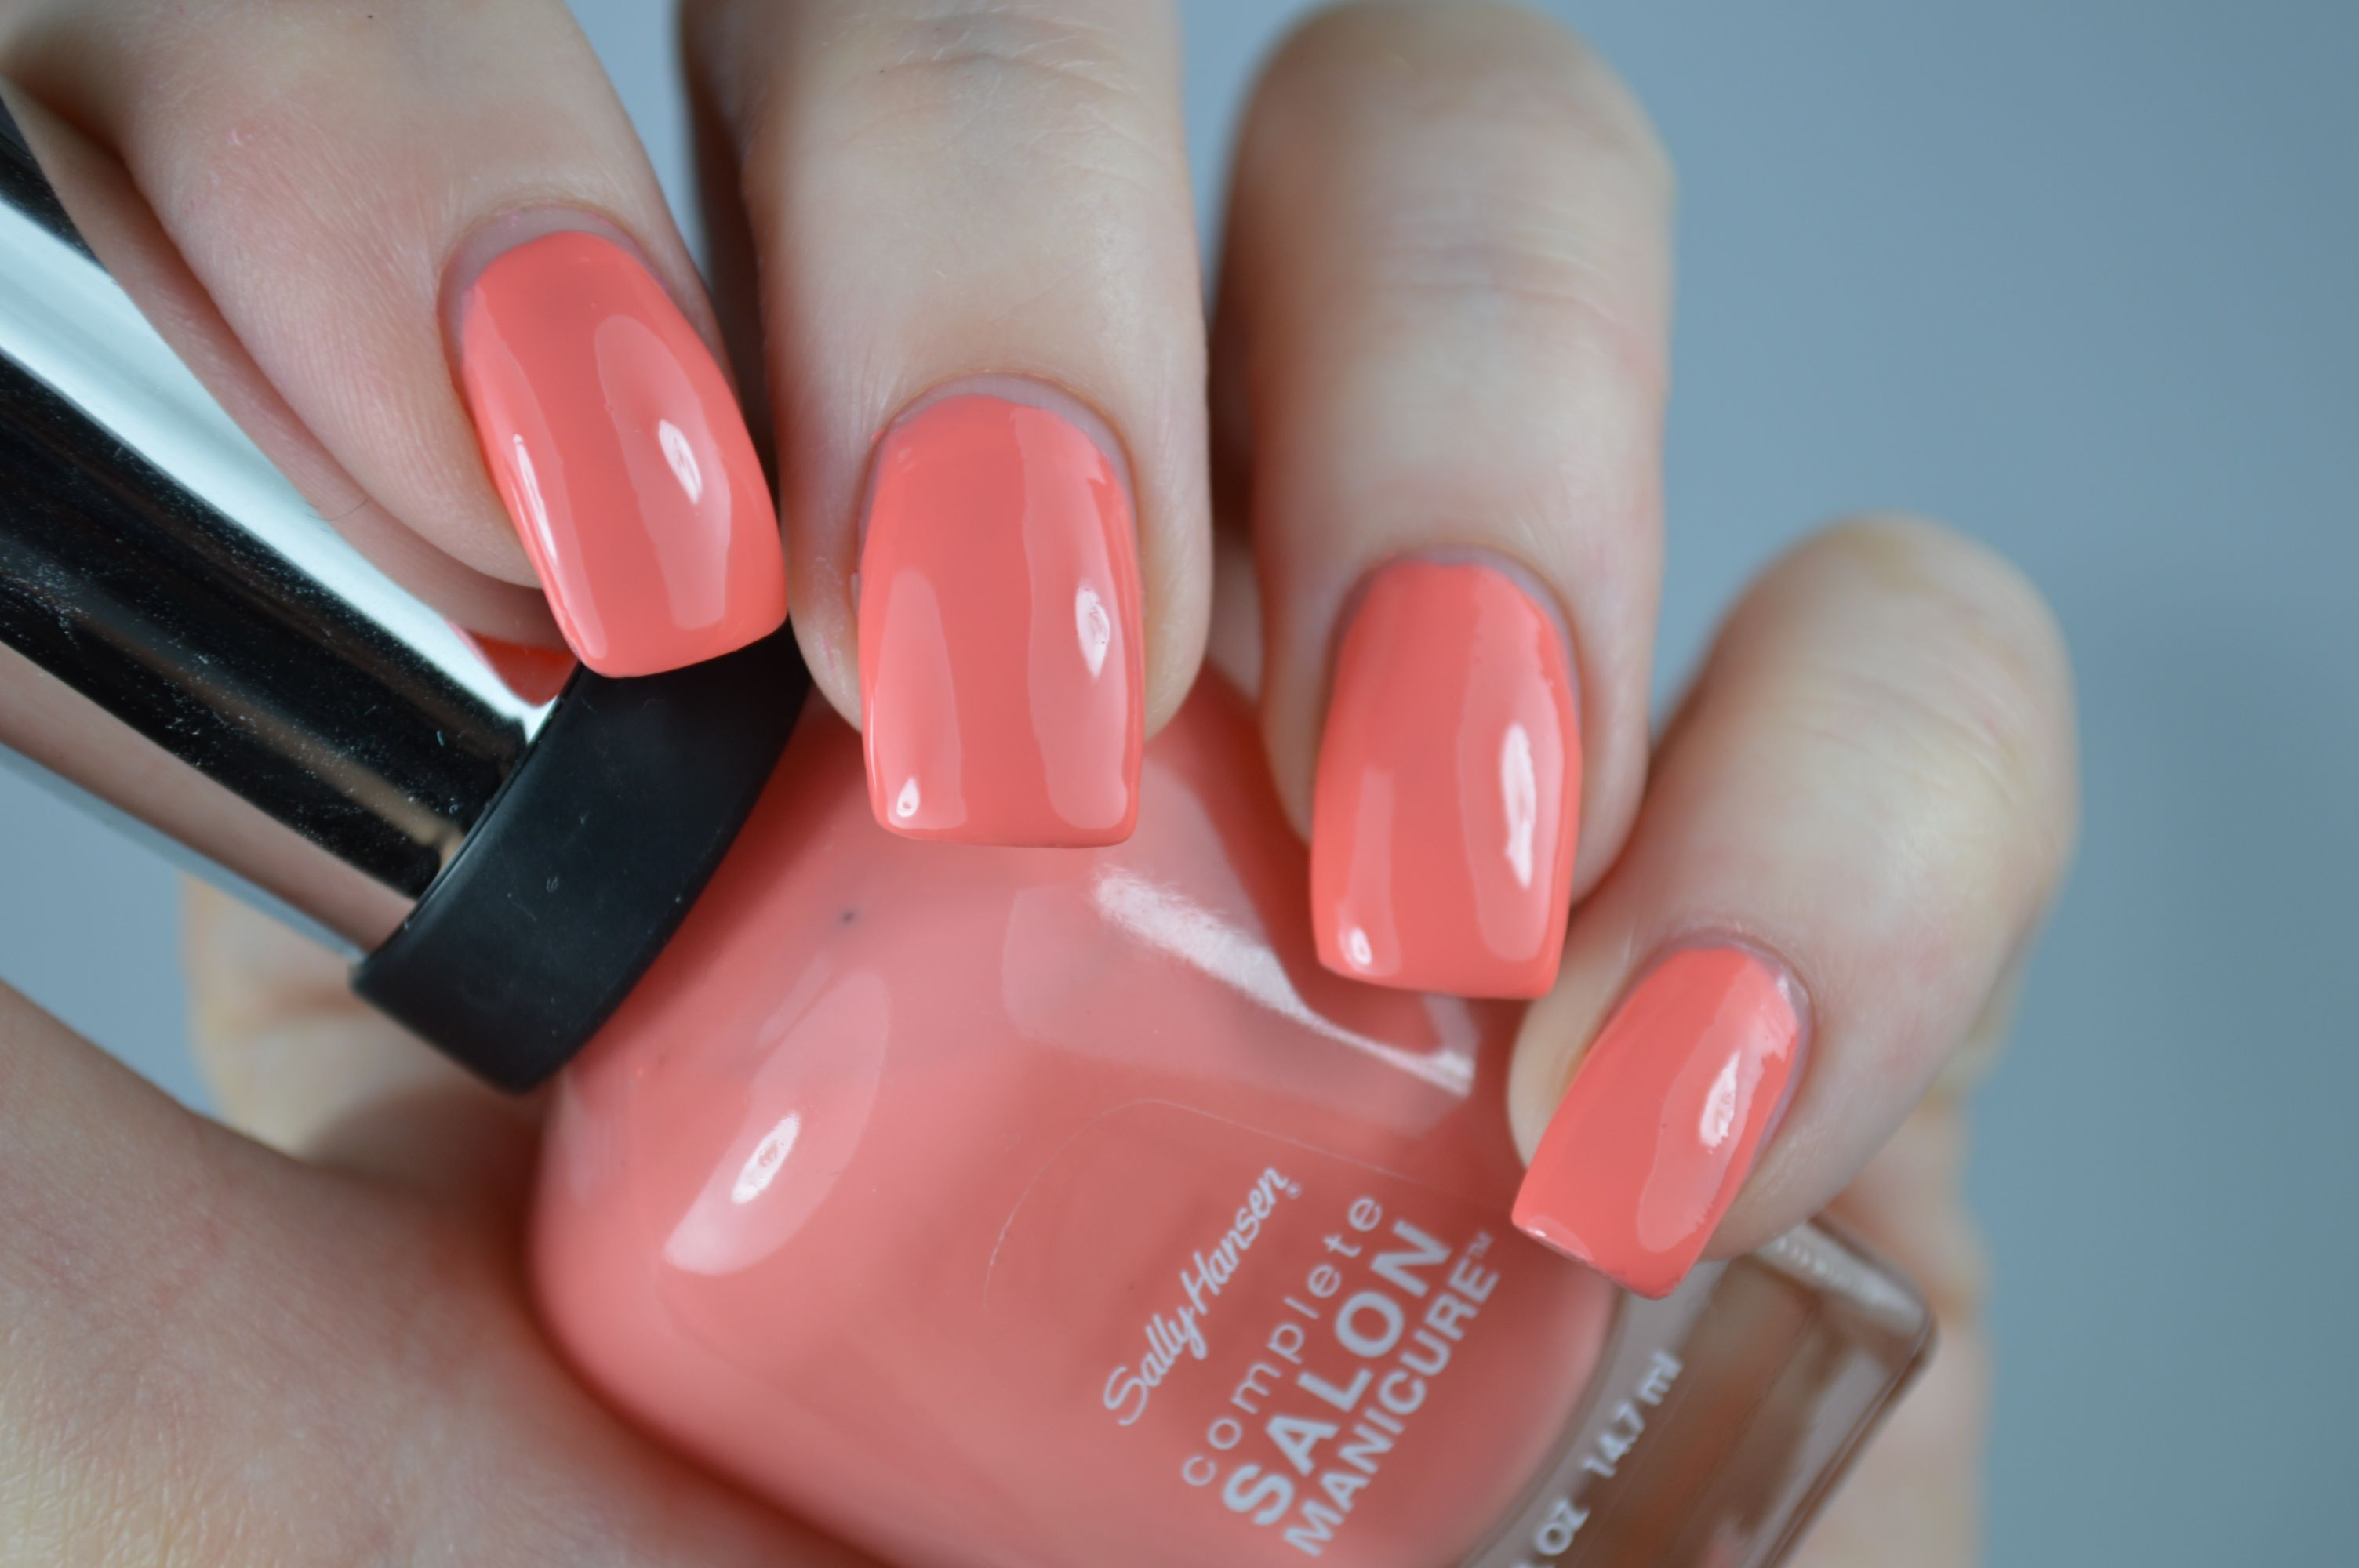 Aufgepinselt: Sally Hansen Peach of Cake